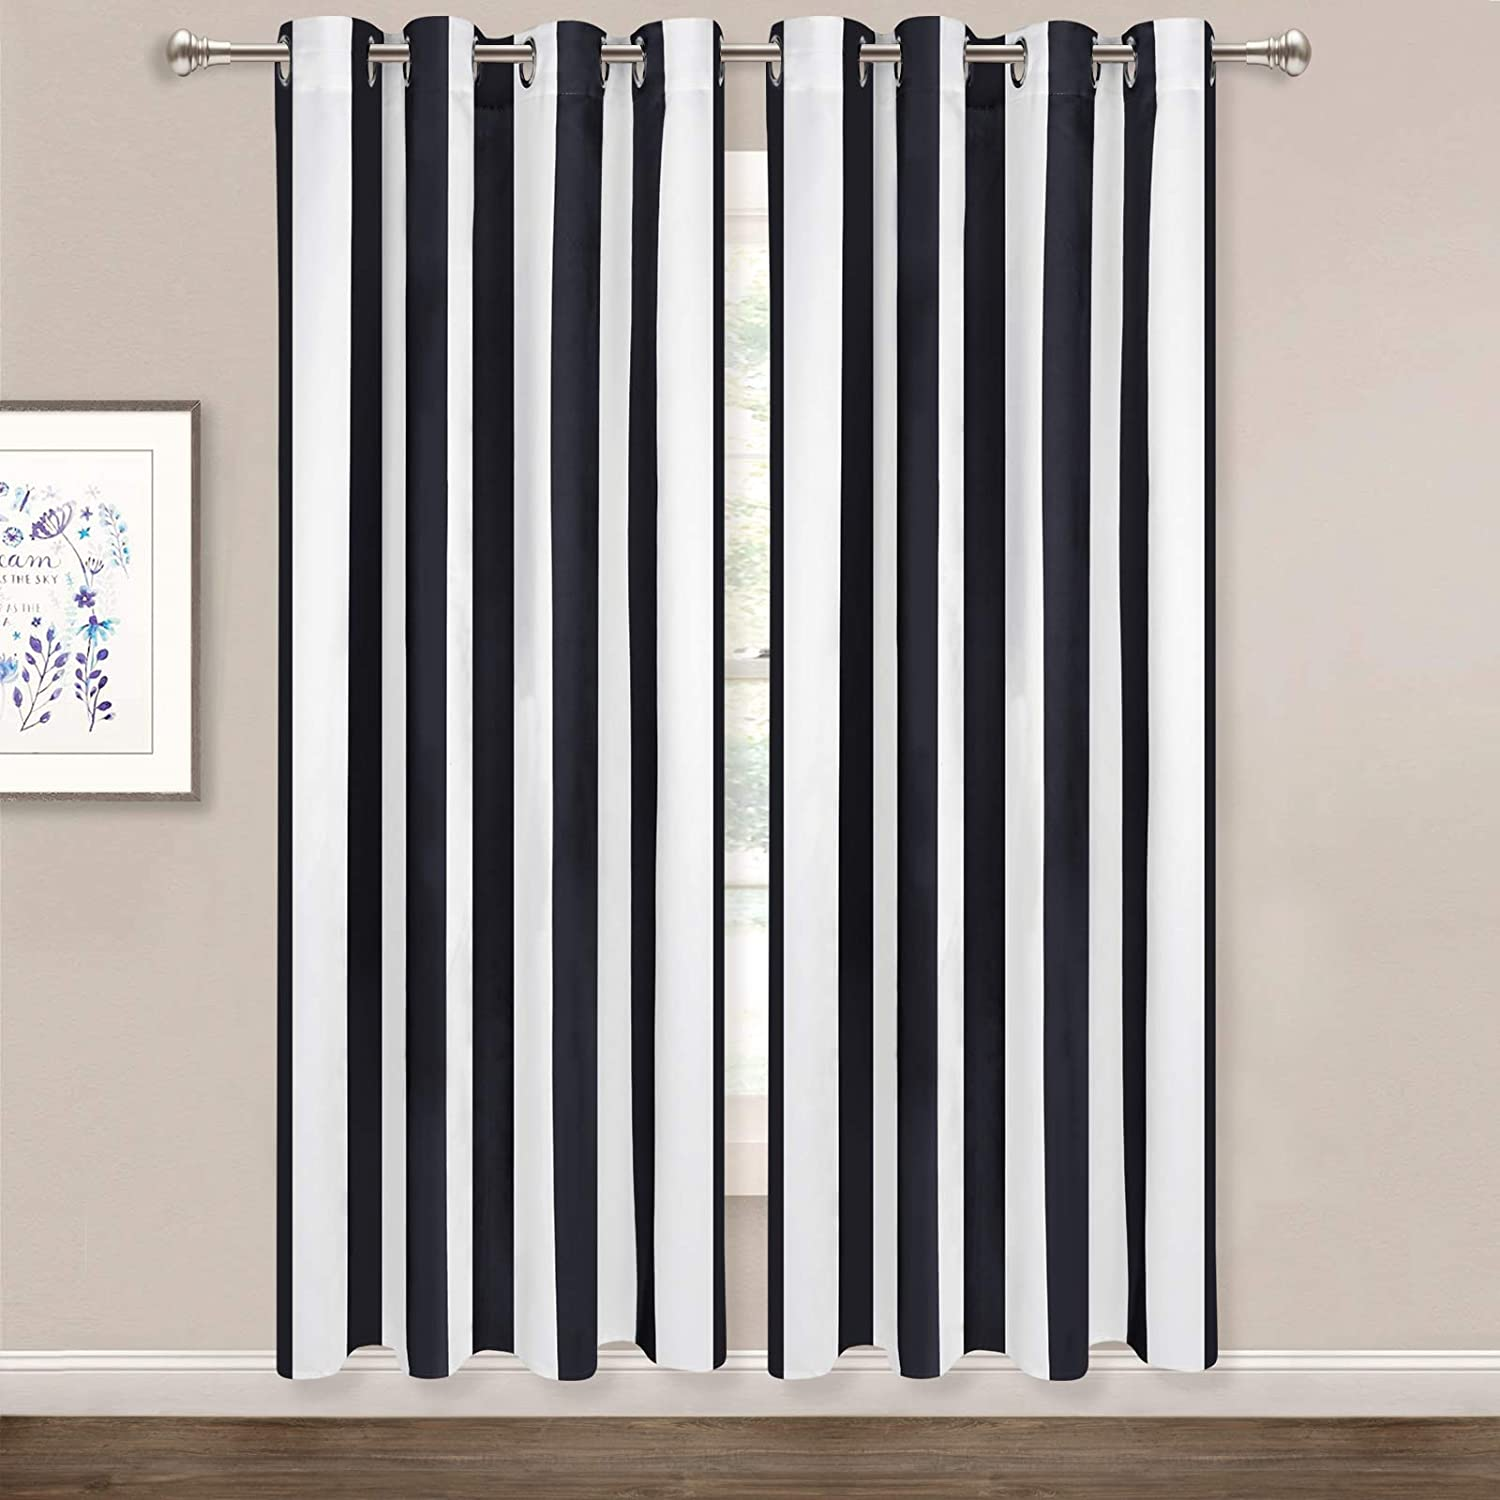 ASPMIZ Striped Window Curtains, Black and White Vertical Stripe Curtain Panel, Window Drapes with Grommets for Bedroom Living Room Decor, Set of 2 Panels, 52 x 63 Inch Length